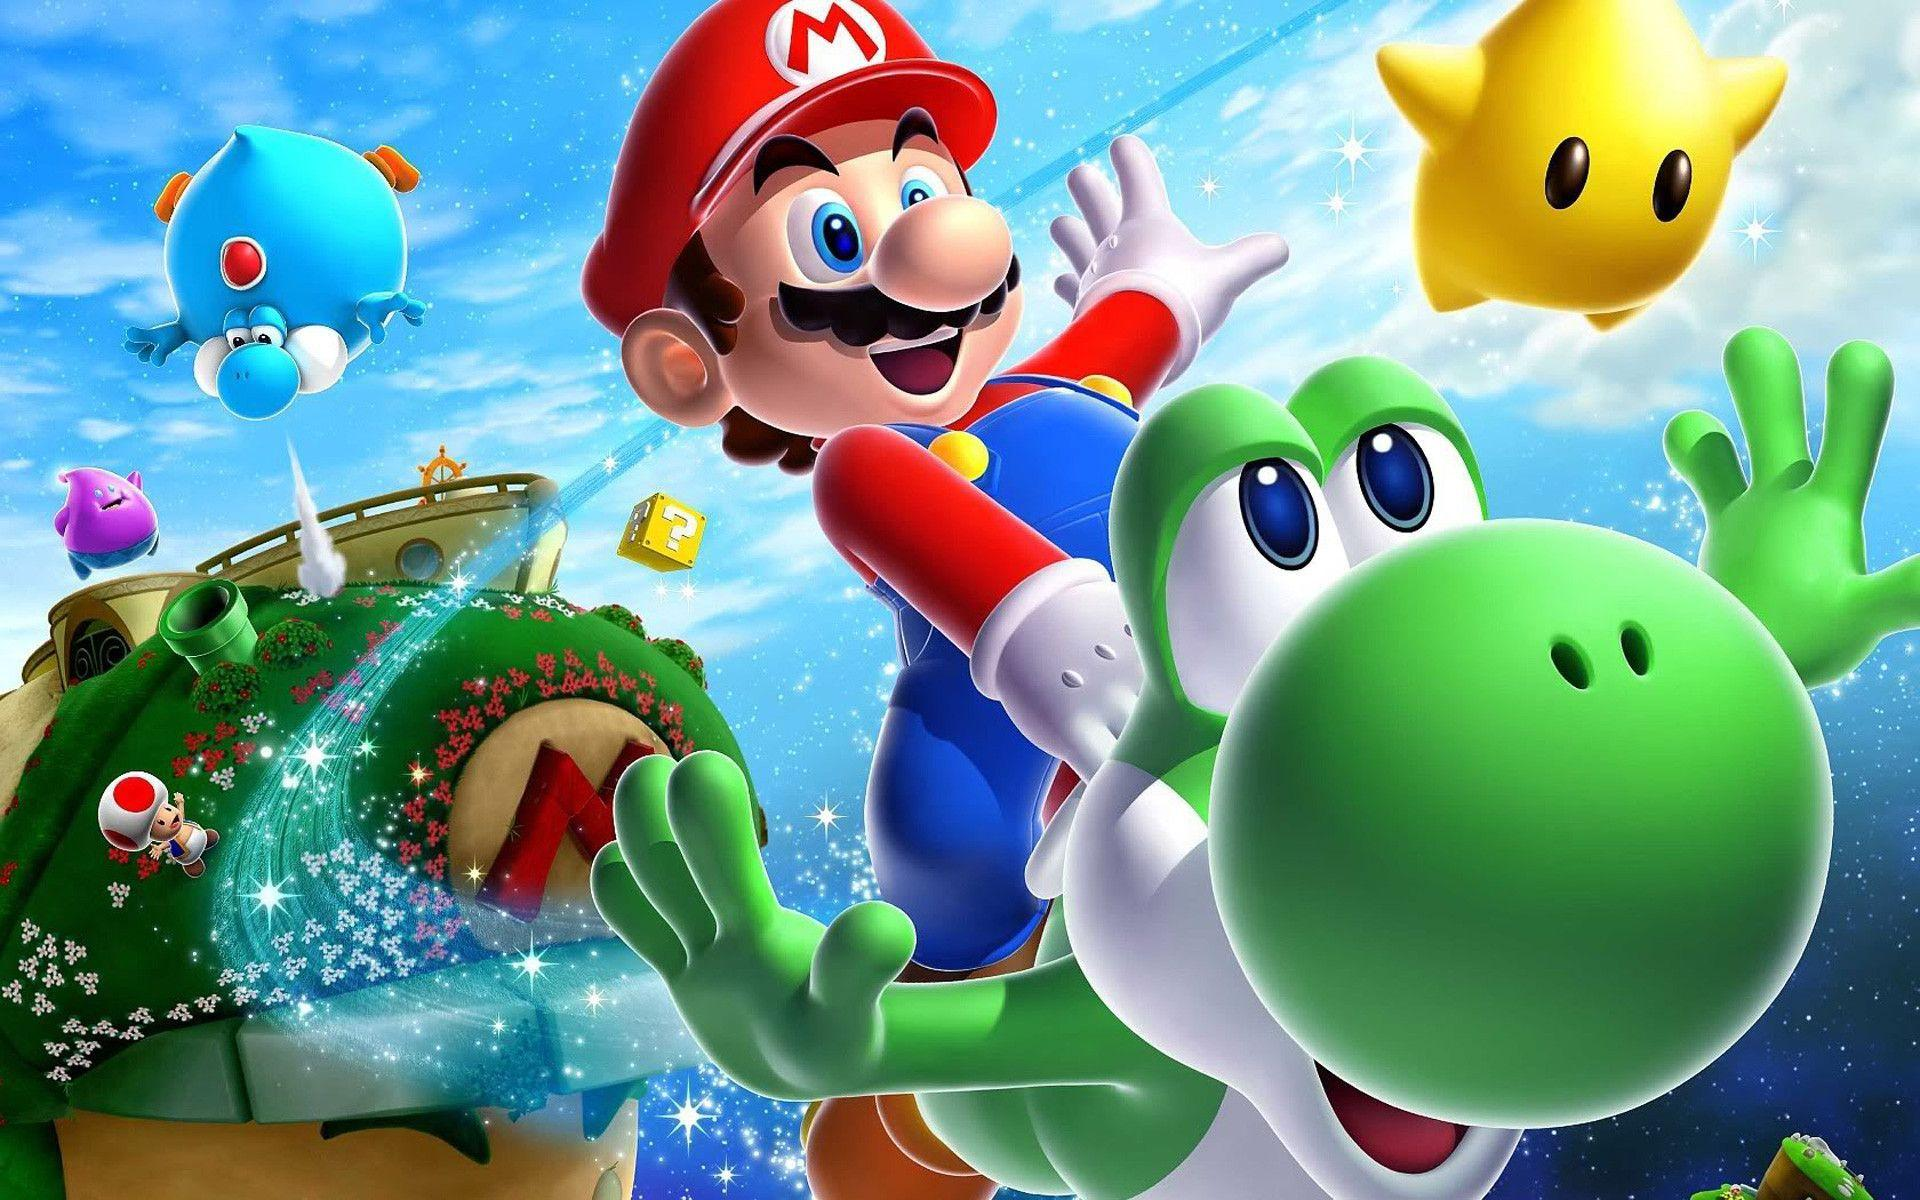 Mario Galaxy Wallpaper 16149 Hd Wallpapers in Games - Telusers.com